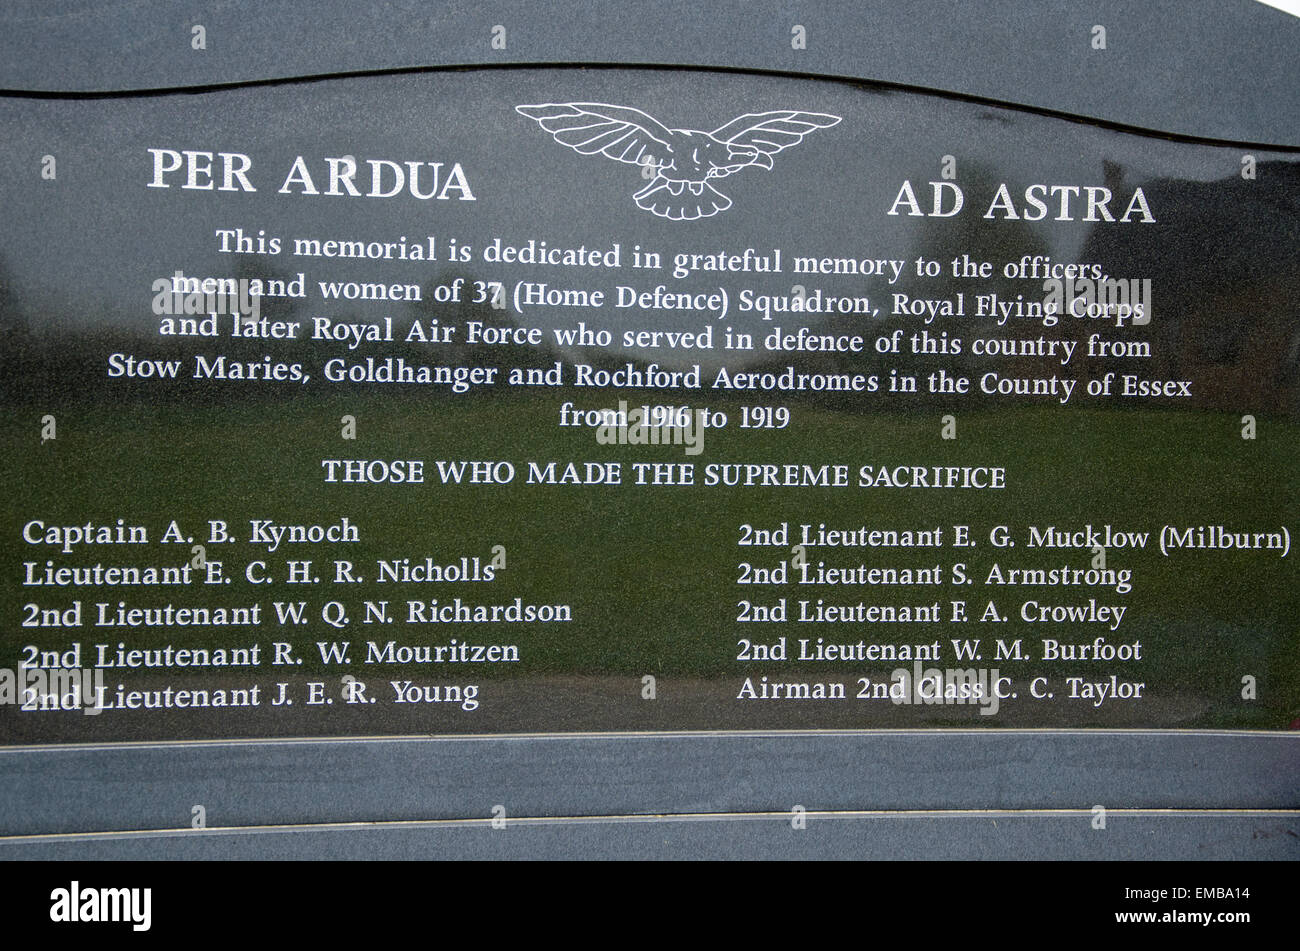 Stow Maries Aerodrome, in memory of the airmen of 37 (Home Defence) Squadron who died whilst serving the squadron - Stock Image